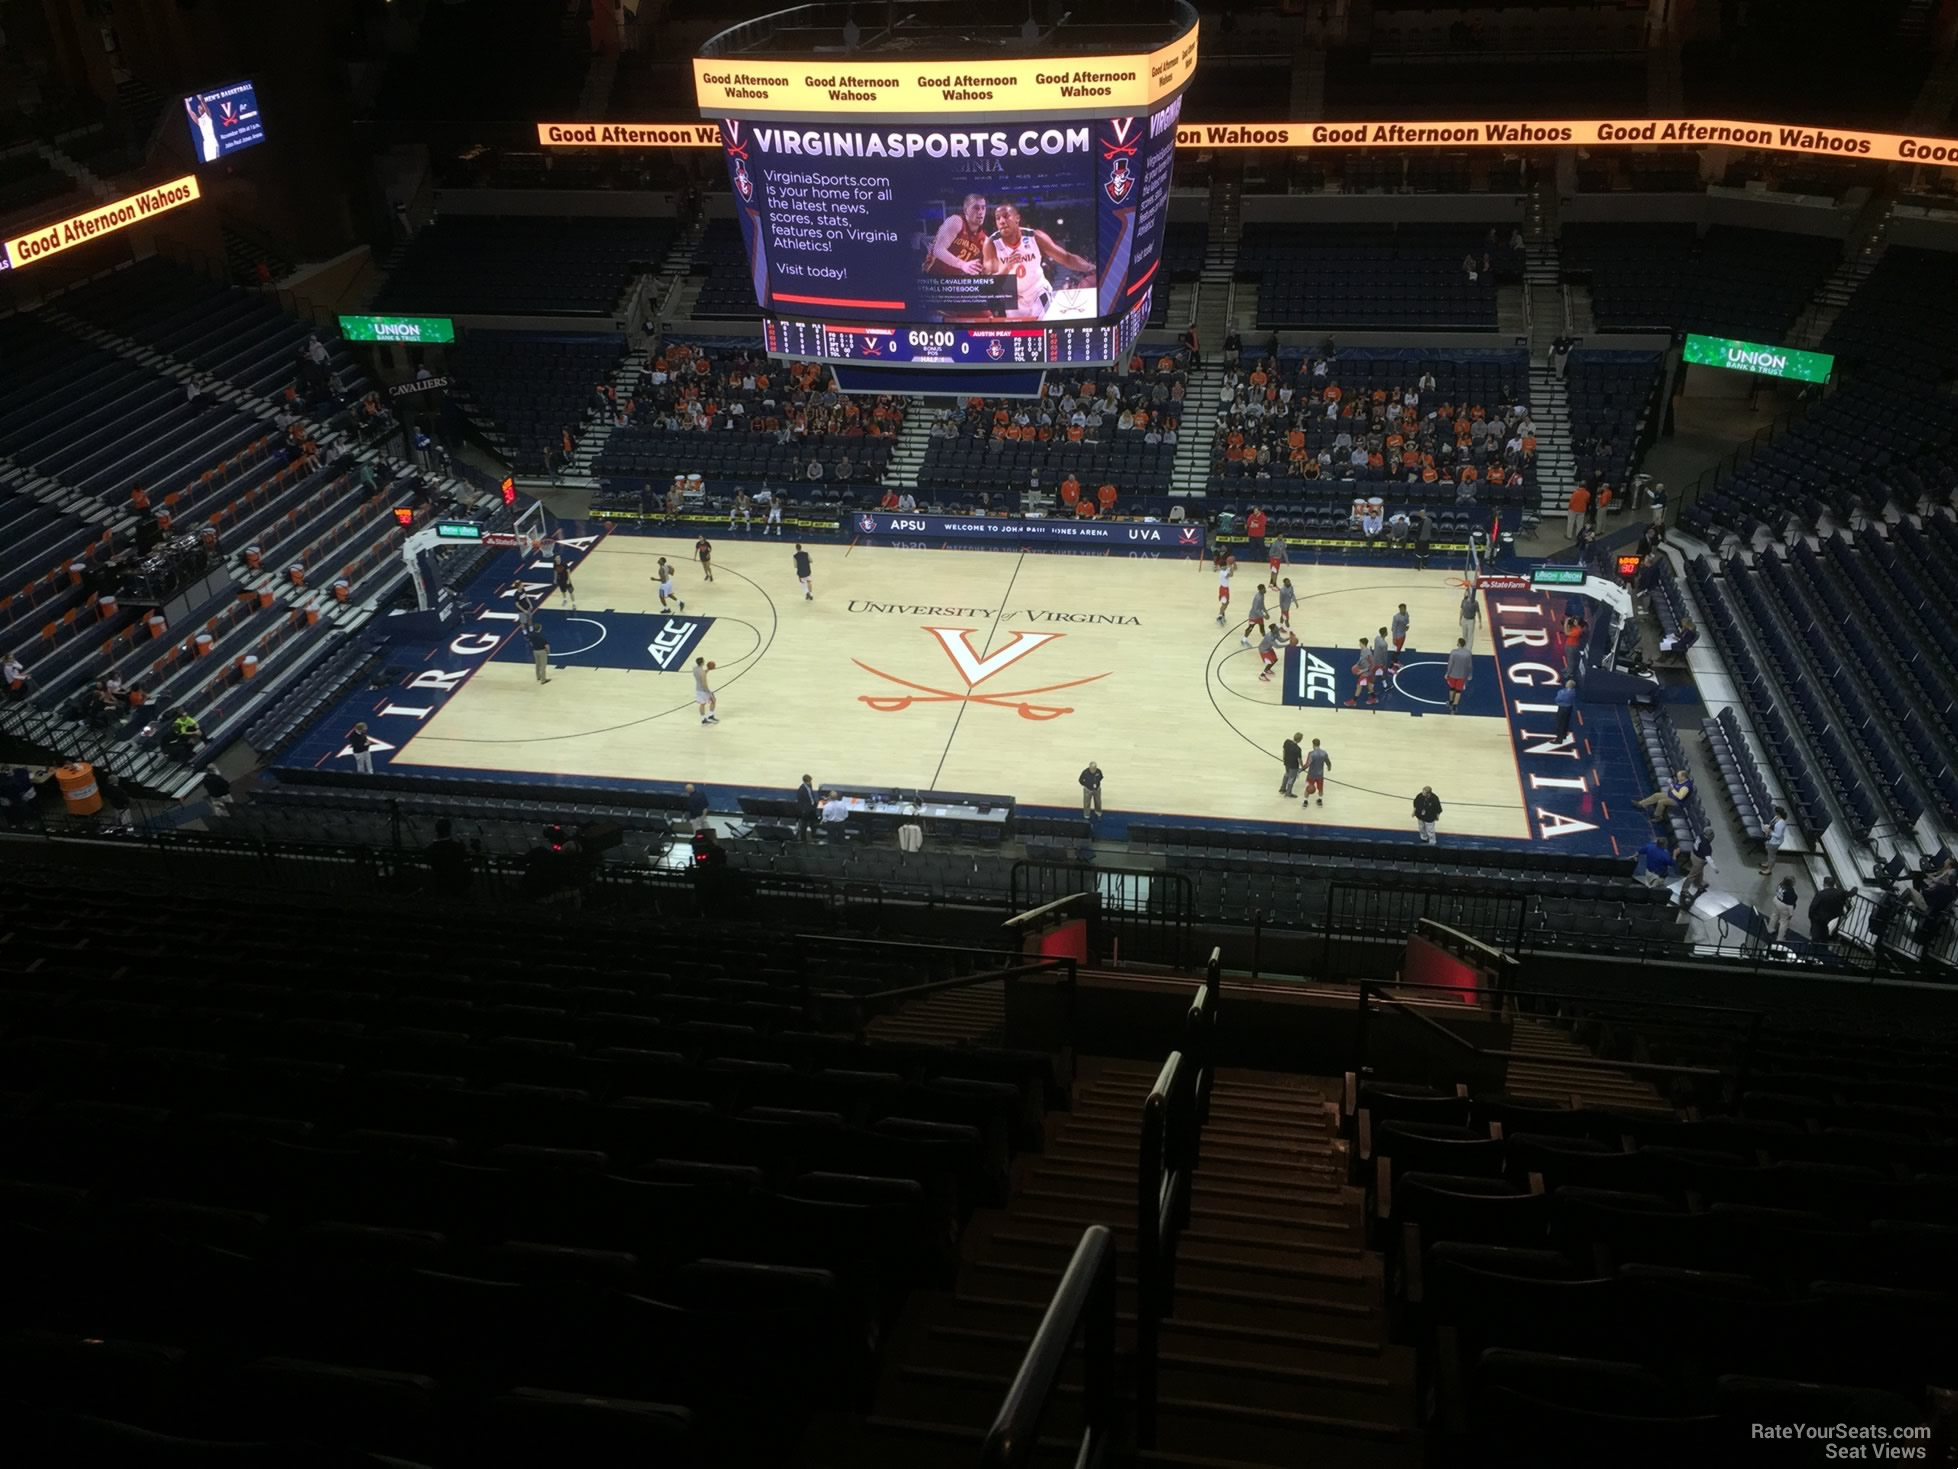 Section 312 seat view